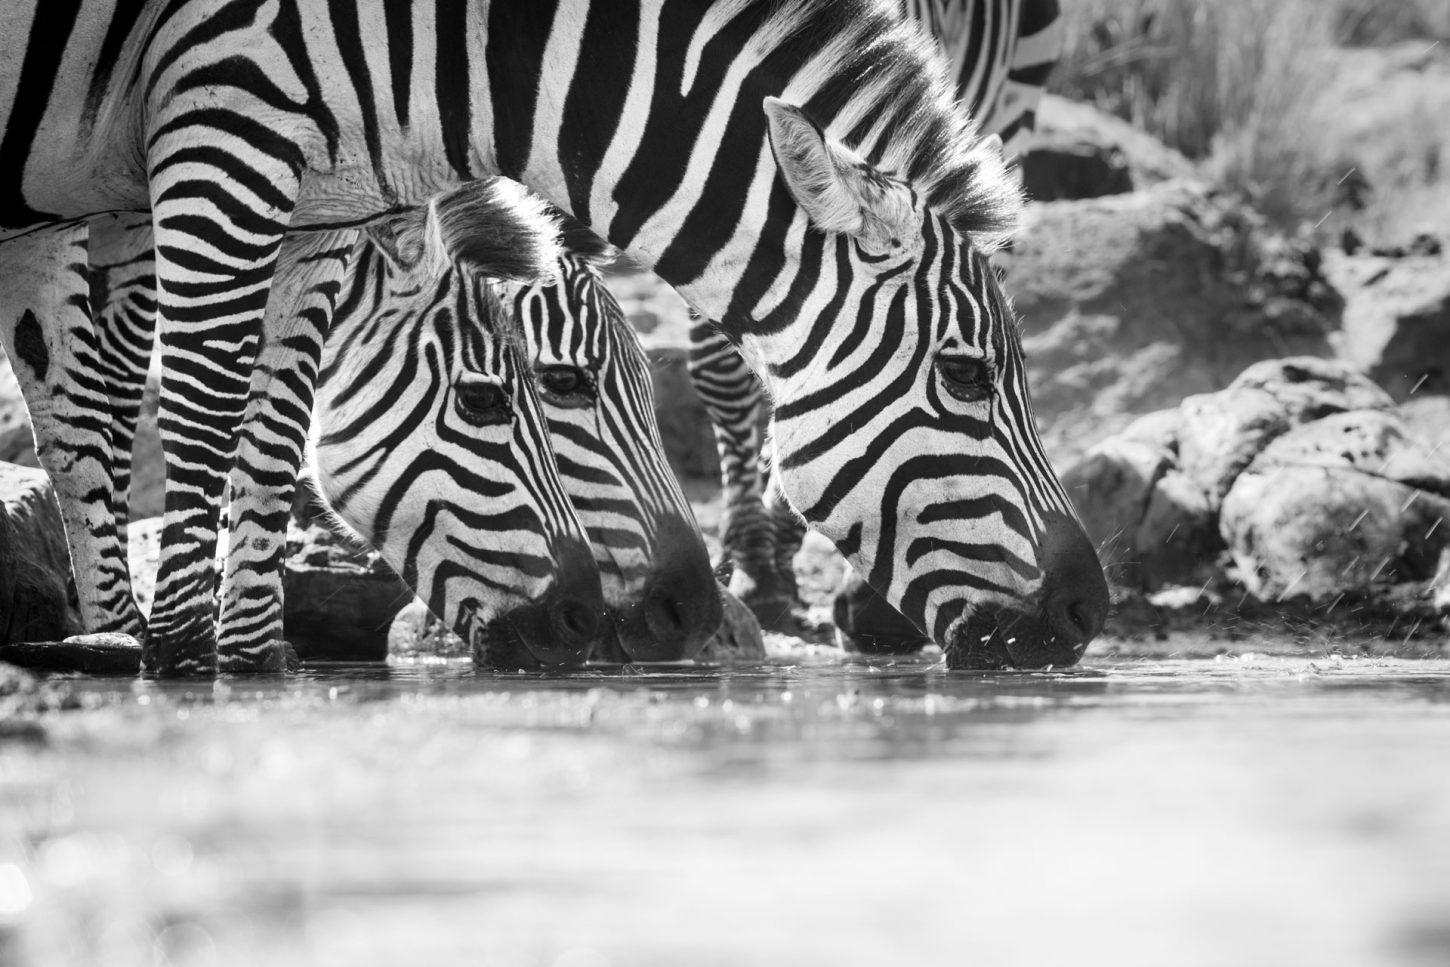 Close up of zebra drinking in black and white